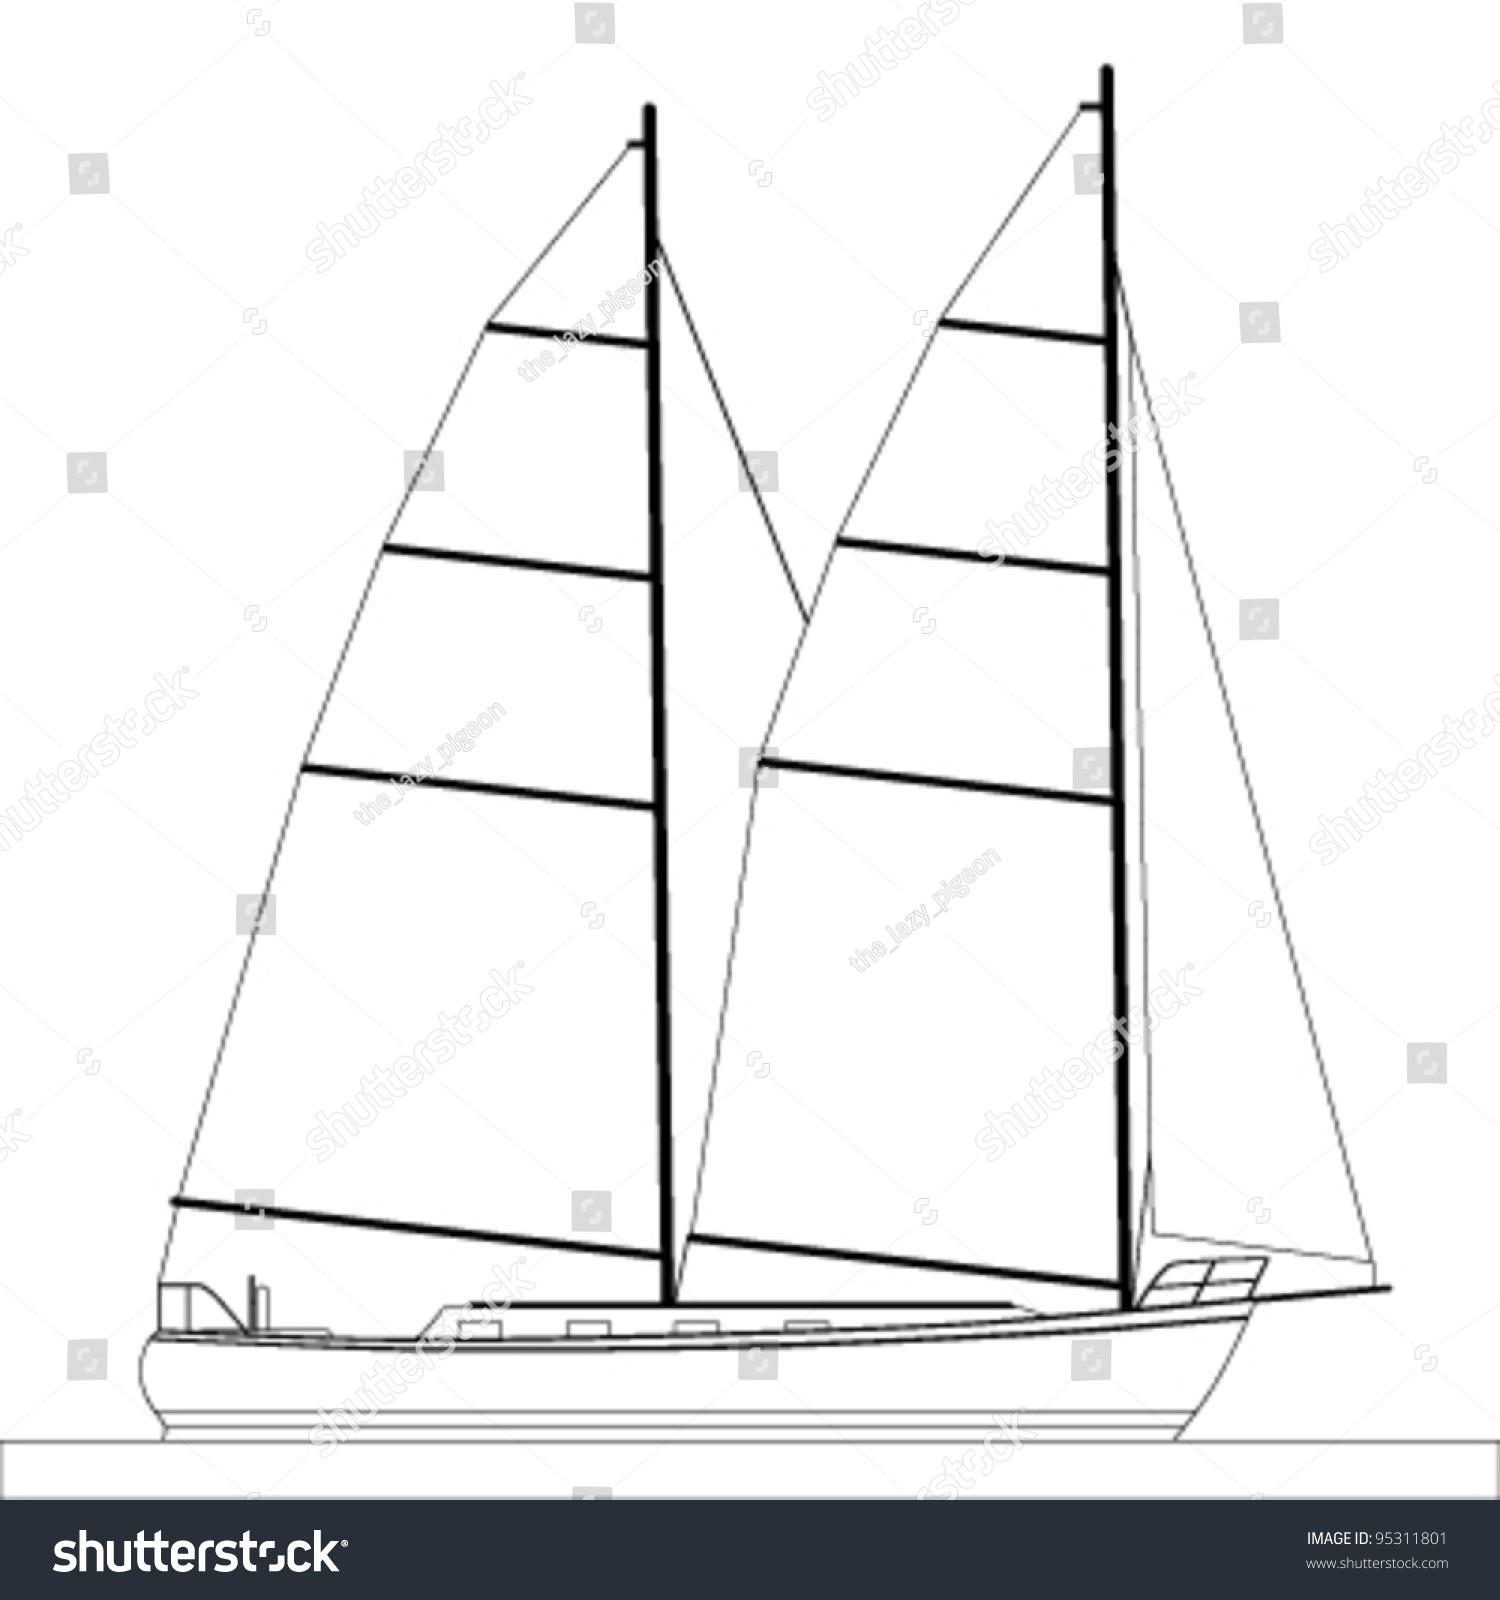 Boat Outline Clipart - Clipart Kid